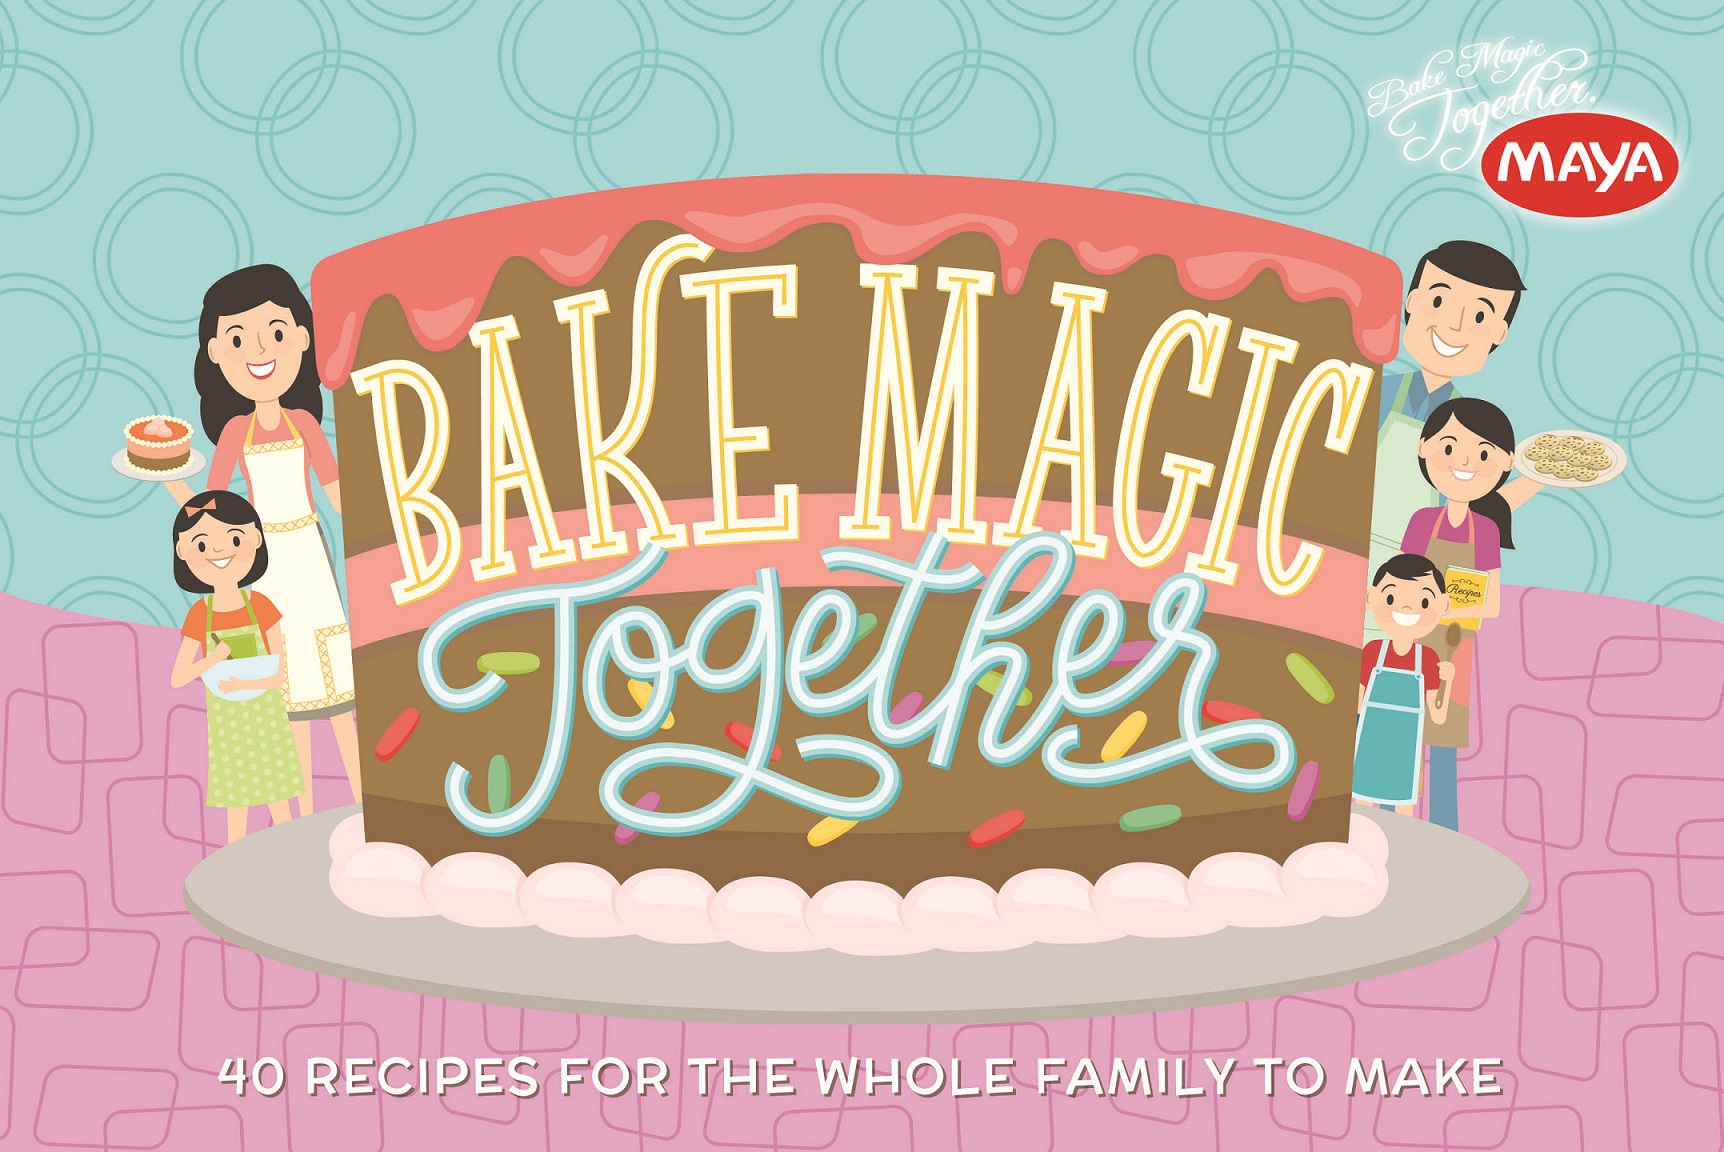 Bake Magic Together: 40 Recipes for the Whole Family to Make